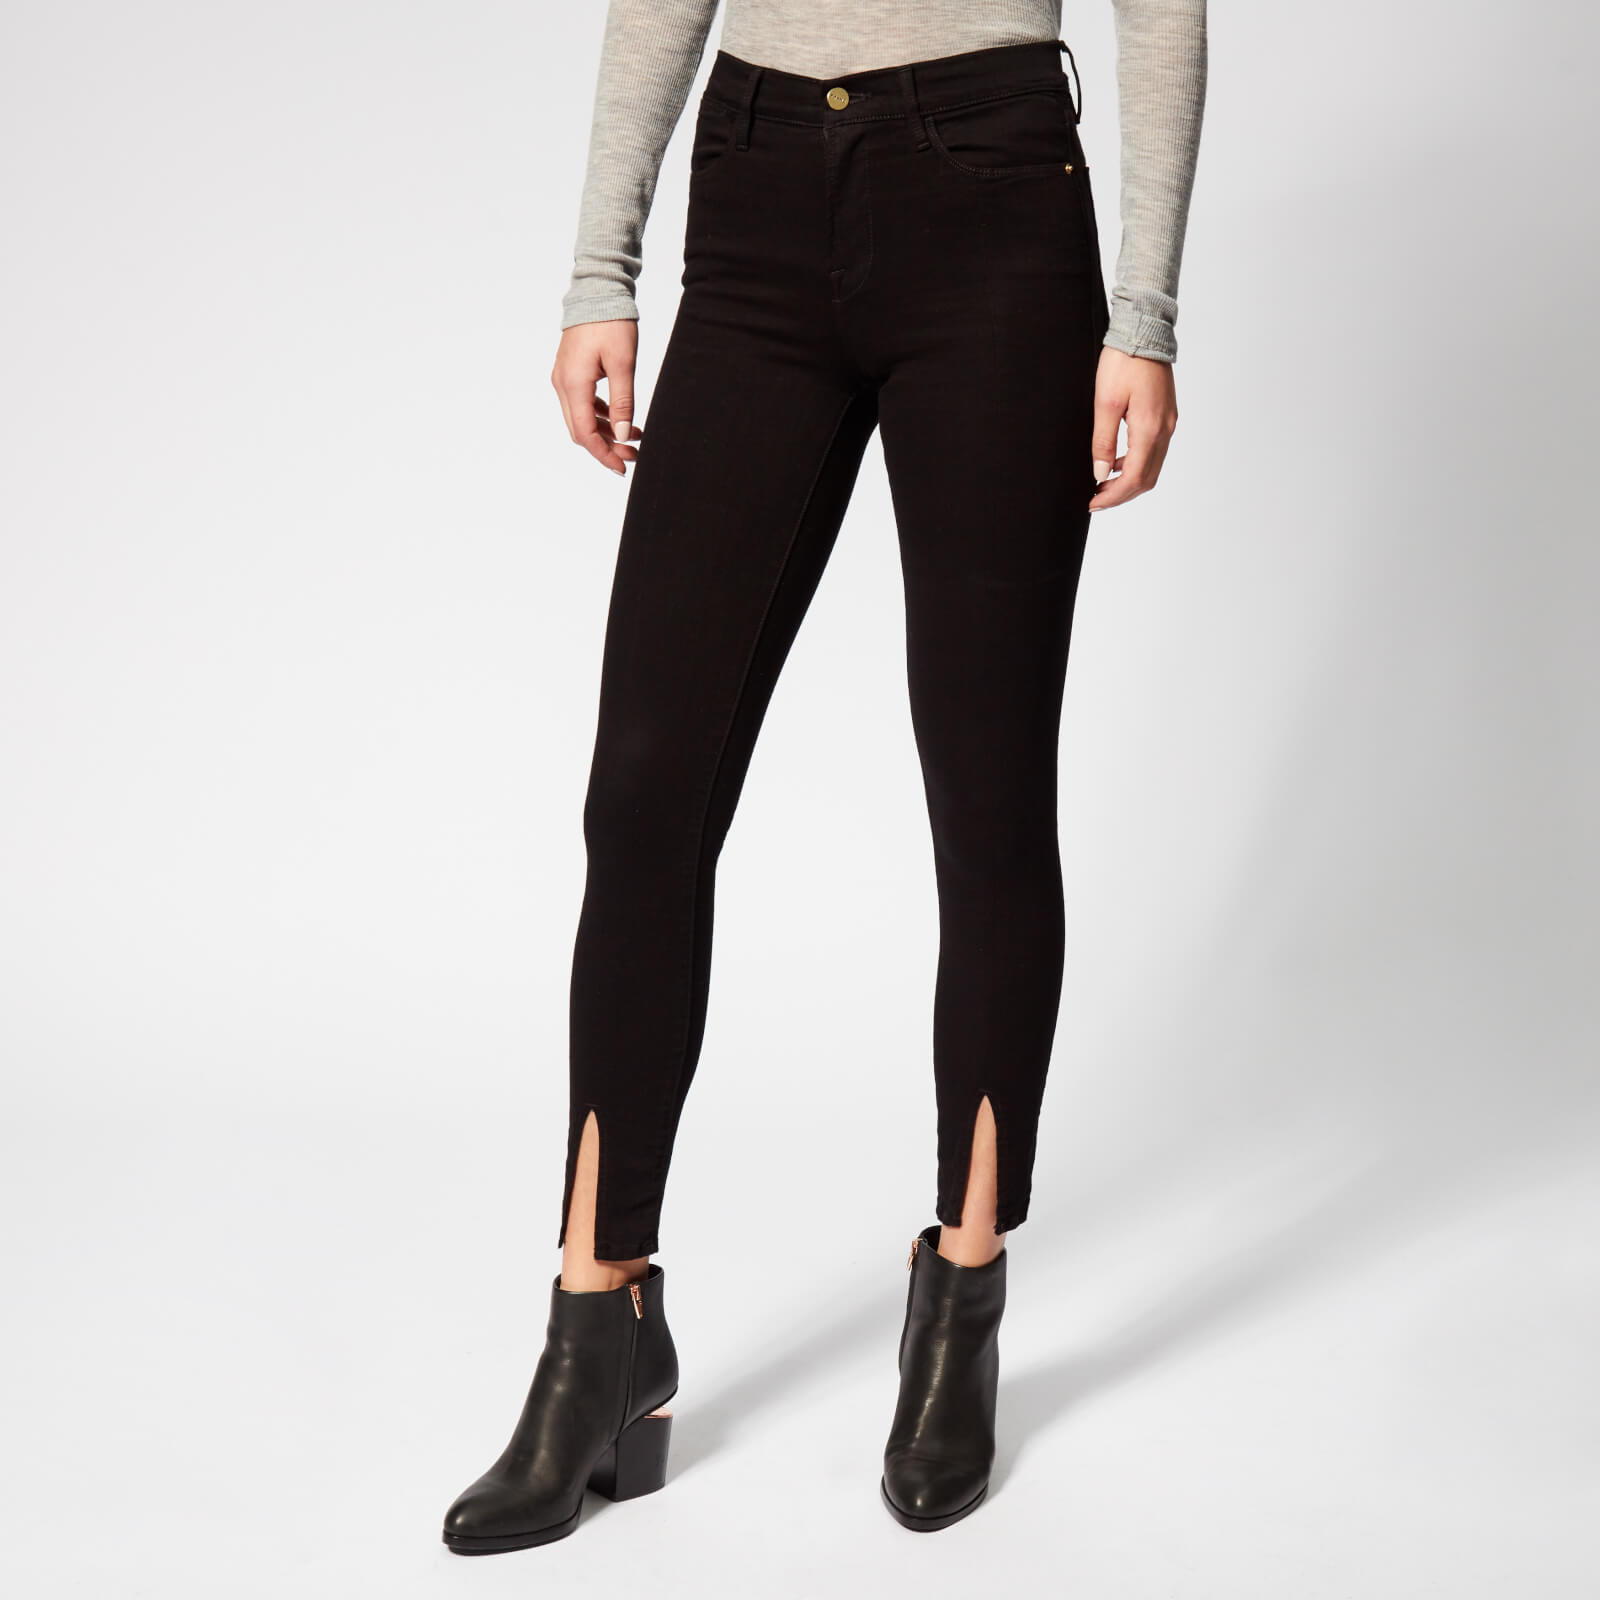 e3165a0588b25 Frame Women s Le High Skinny Front Split Jeans - Film Noir - Free UK  Delivery over £50